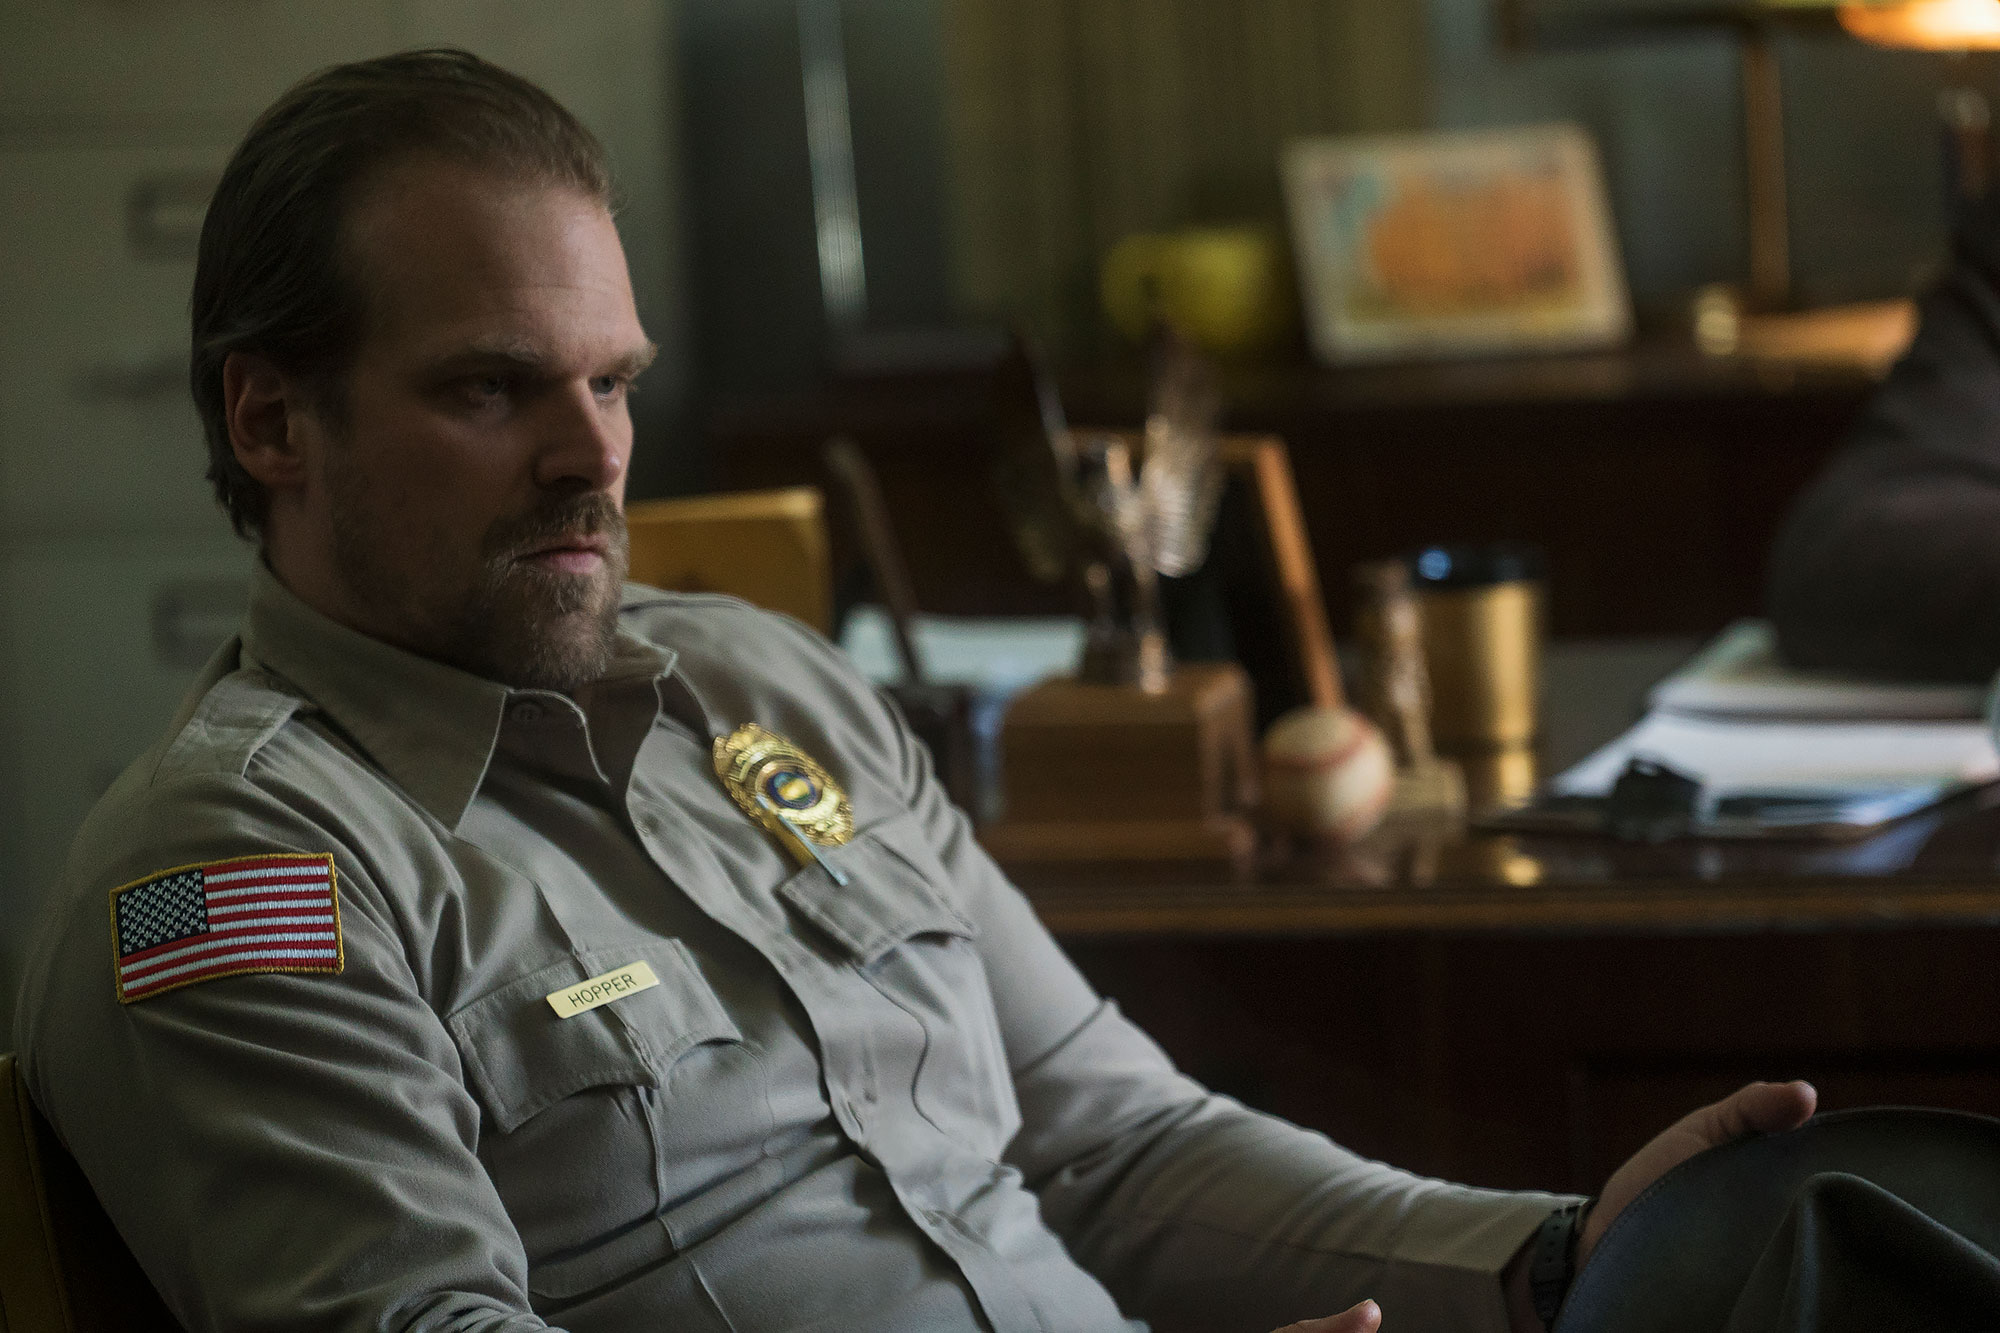 WHAT DOES CHIEF HOPPER KNOW ABOUT ELEVEN'S WHEREABOUTS, AND WHAT IS HIS INVOLVEMENT WITH HAWKINS LAB?